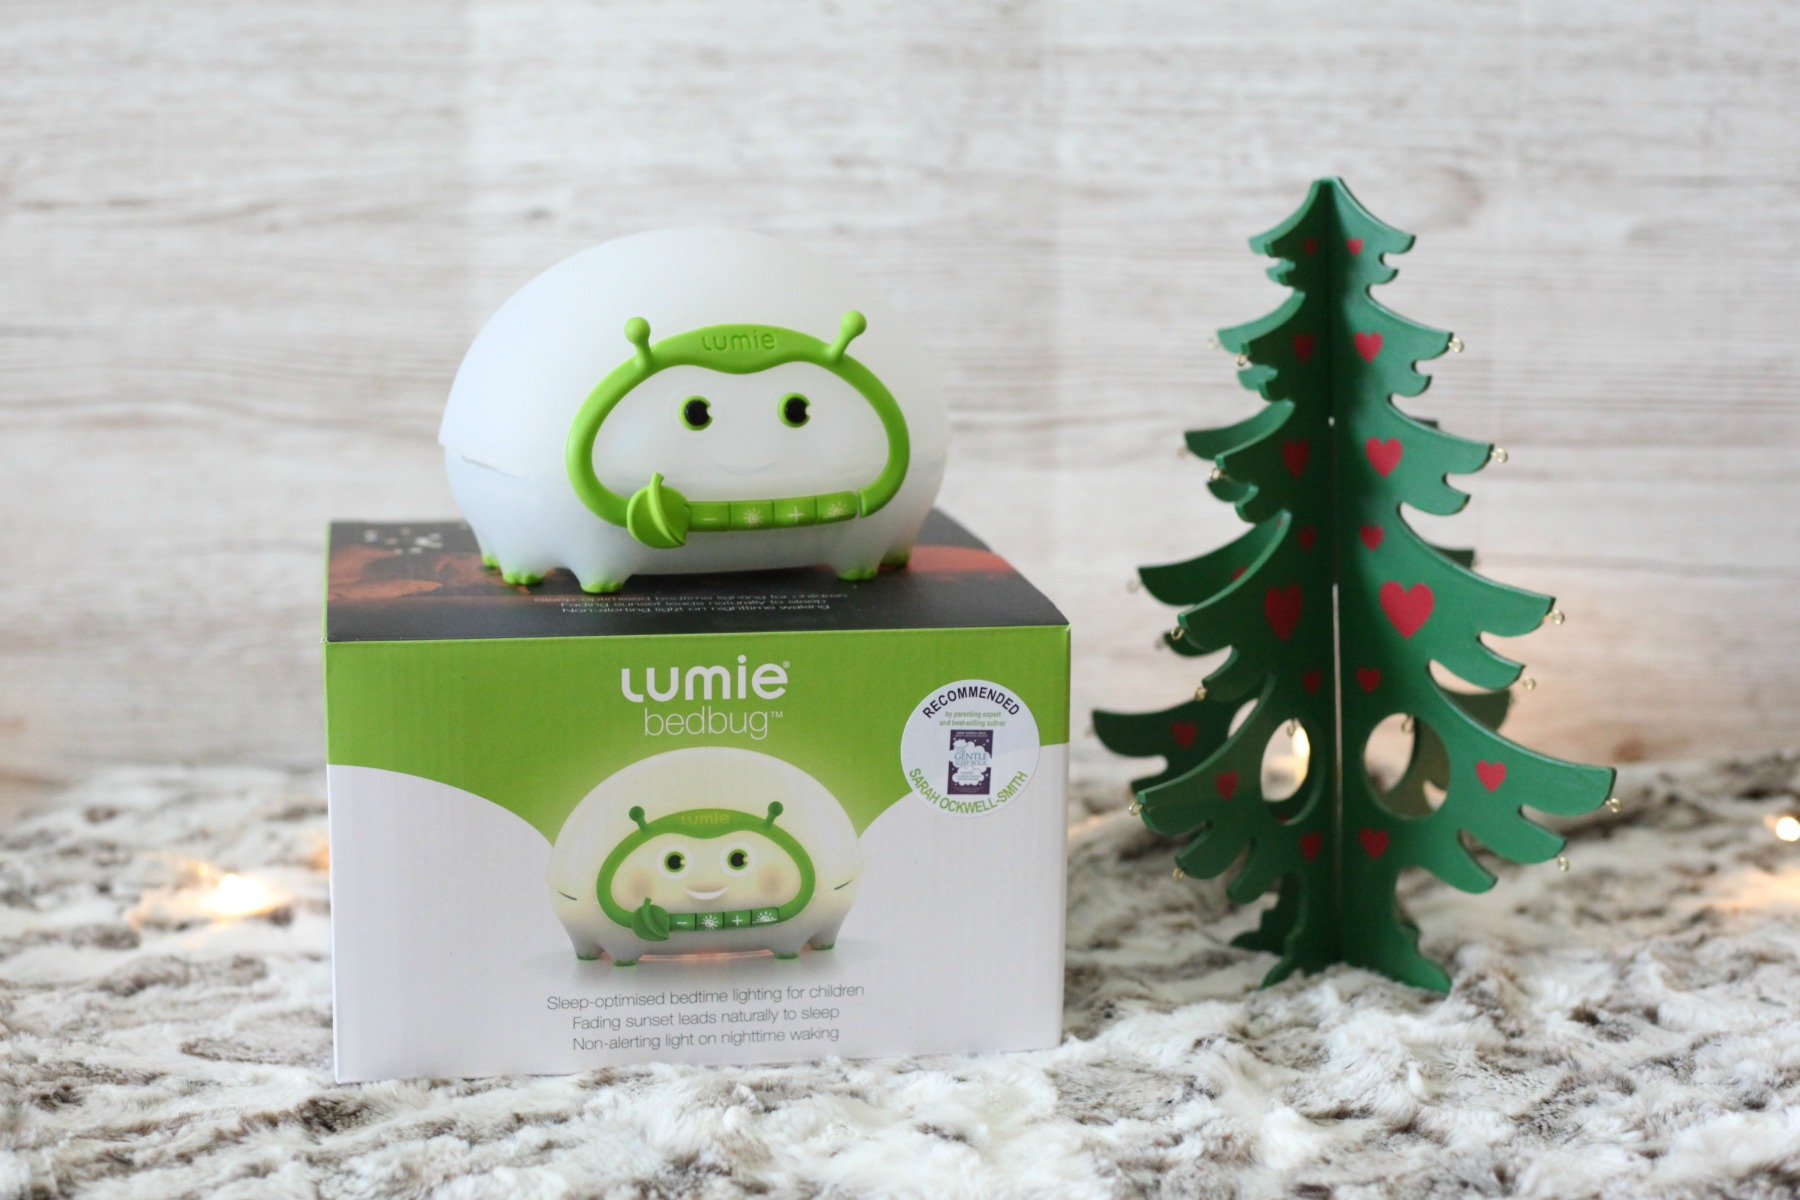 Stuck for toddler Christmas gift ideas? The Lumie Bedbug is a great present.